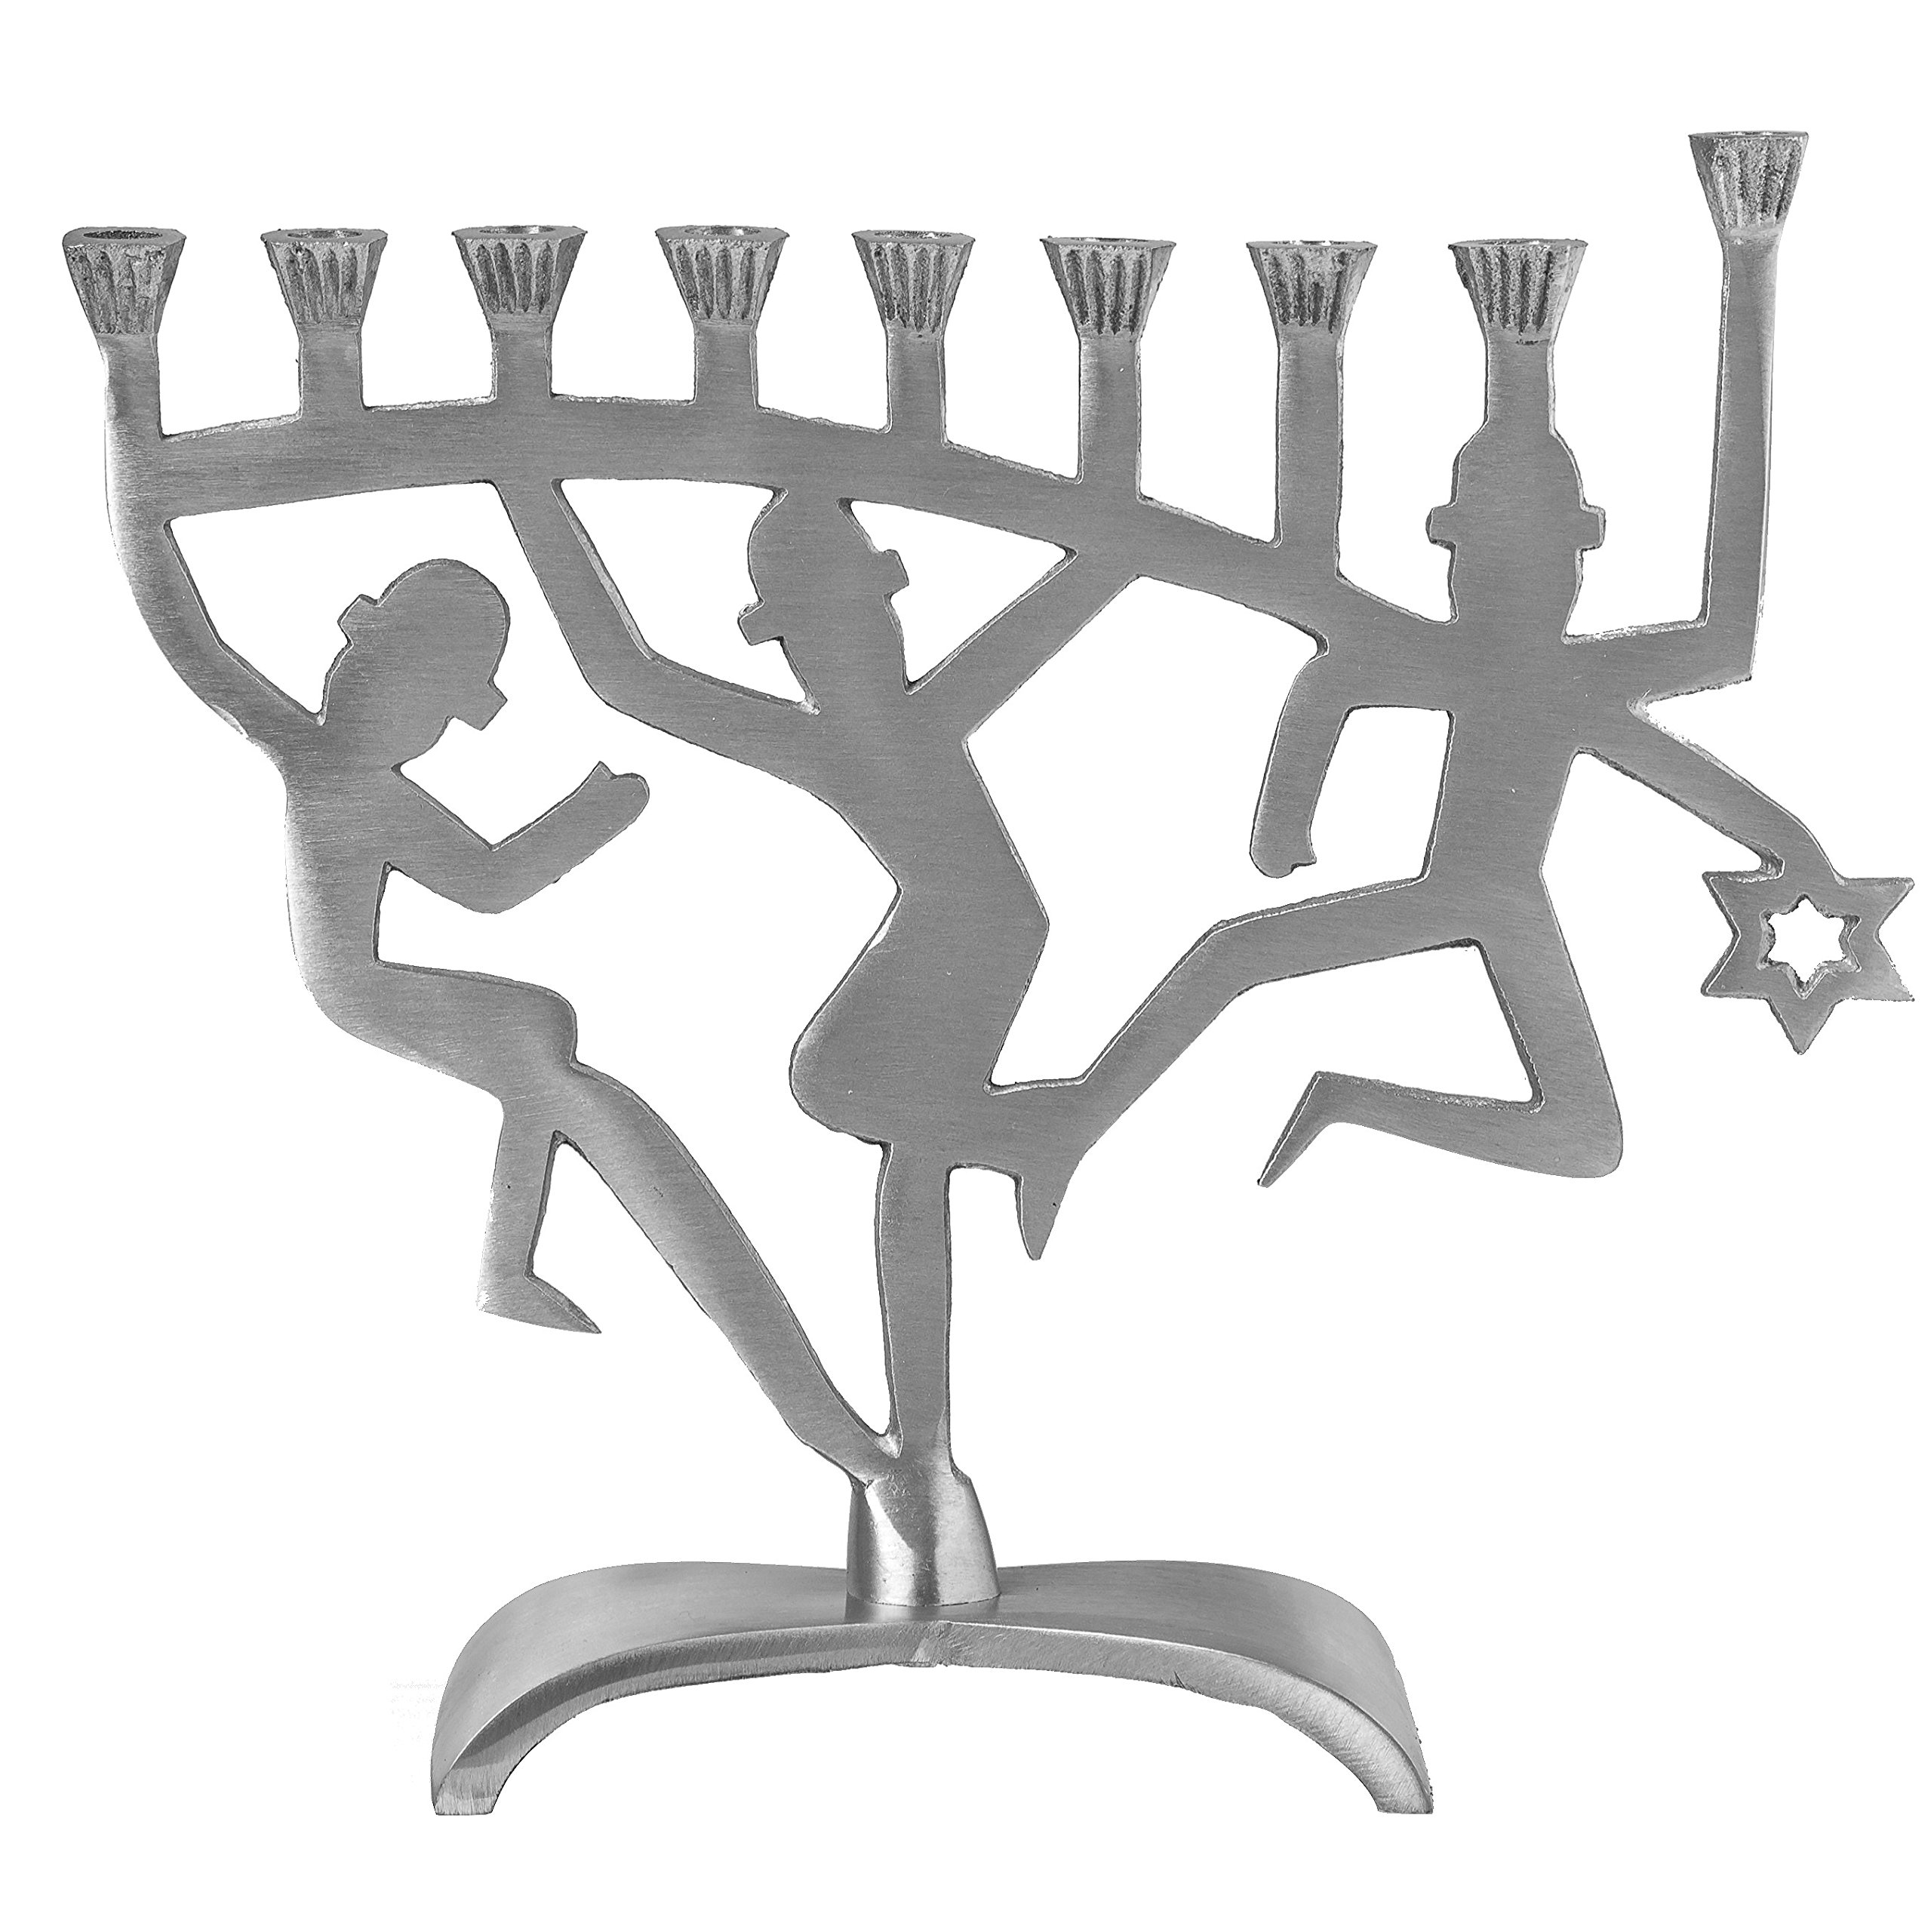 Ner Mitzvah Artistic Aluminum Candle Menorah - Fits All Standard Chanukah Candles - Dancing Lights Figurines Design